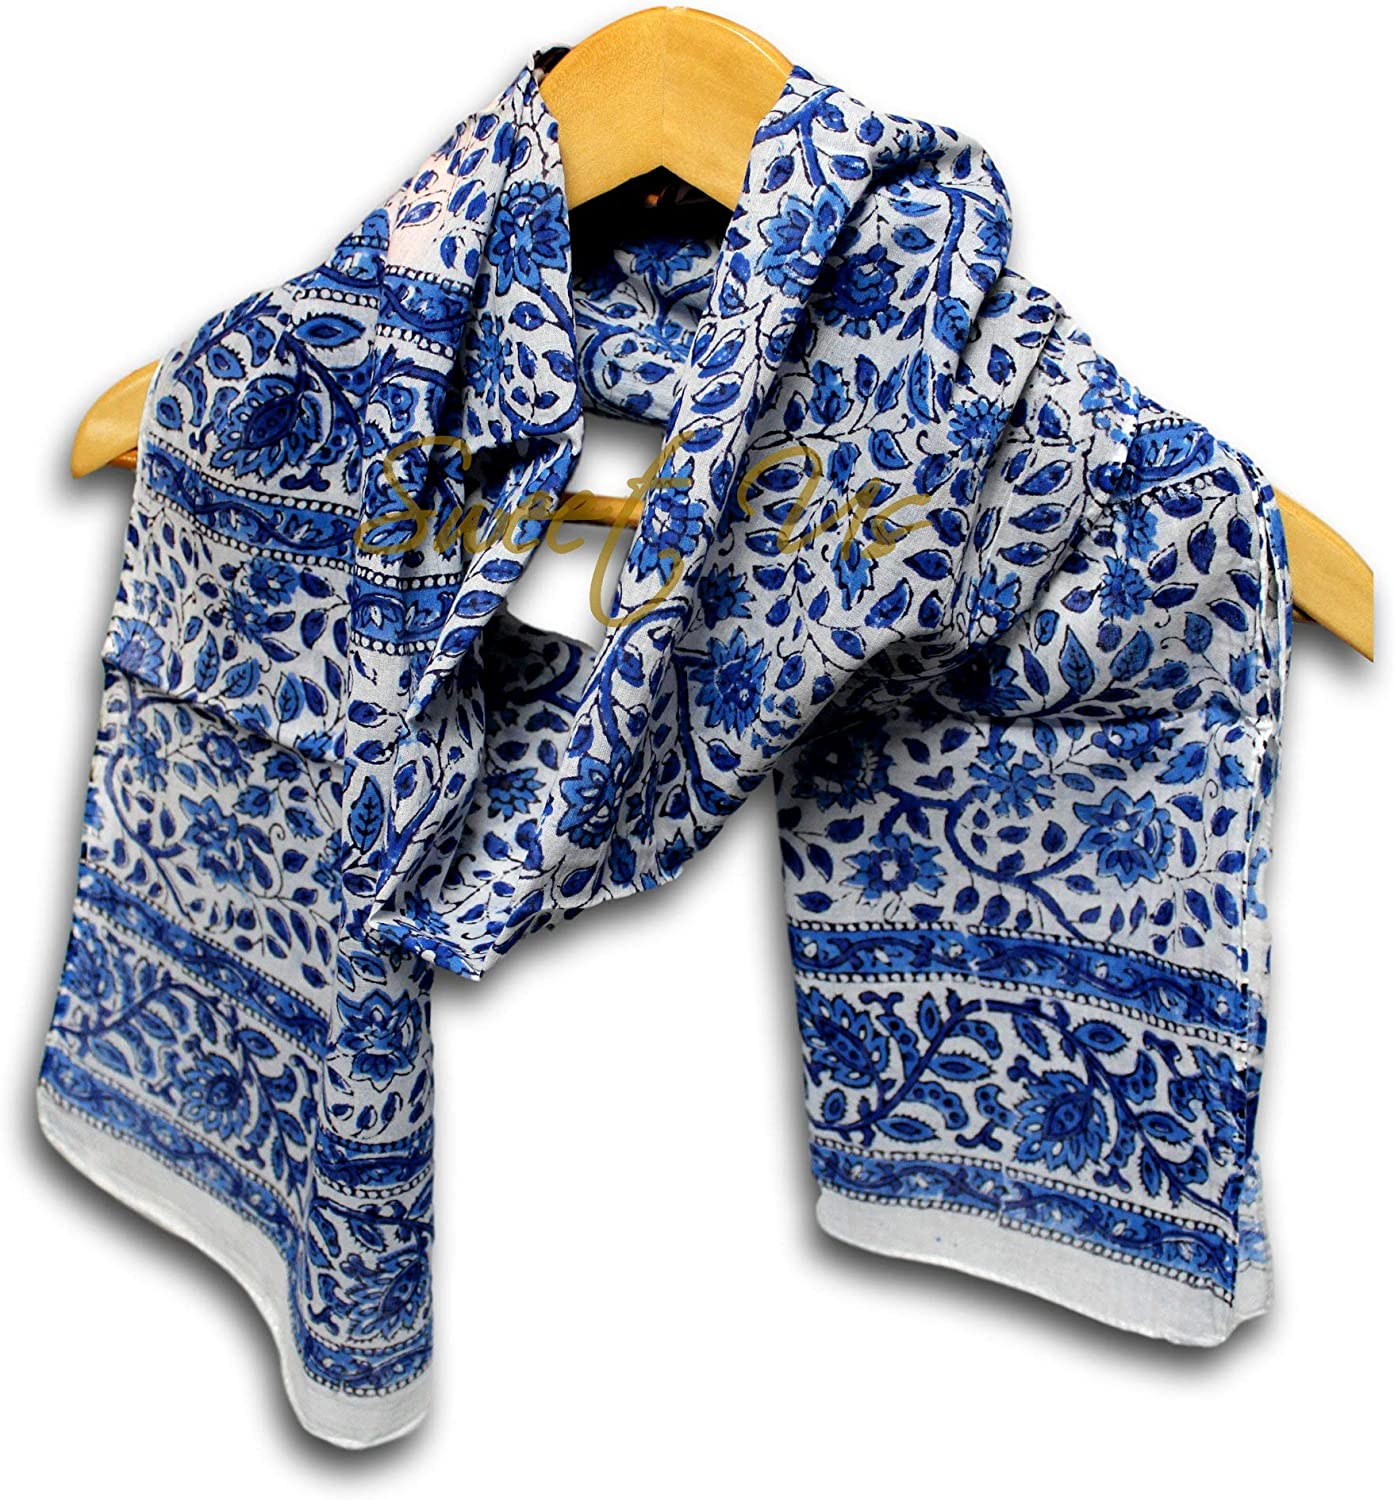 Large Cotton Scarfs for Women Lightweight Soft Sheer Neck Scarf, Head Scarf, Block Print Summer Floral Scarf, Bandanas for Women, Handmade Blue Fashion Scarf Shawl Stole Wraps 15x72 inches